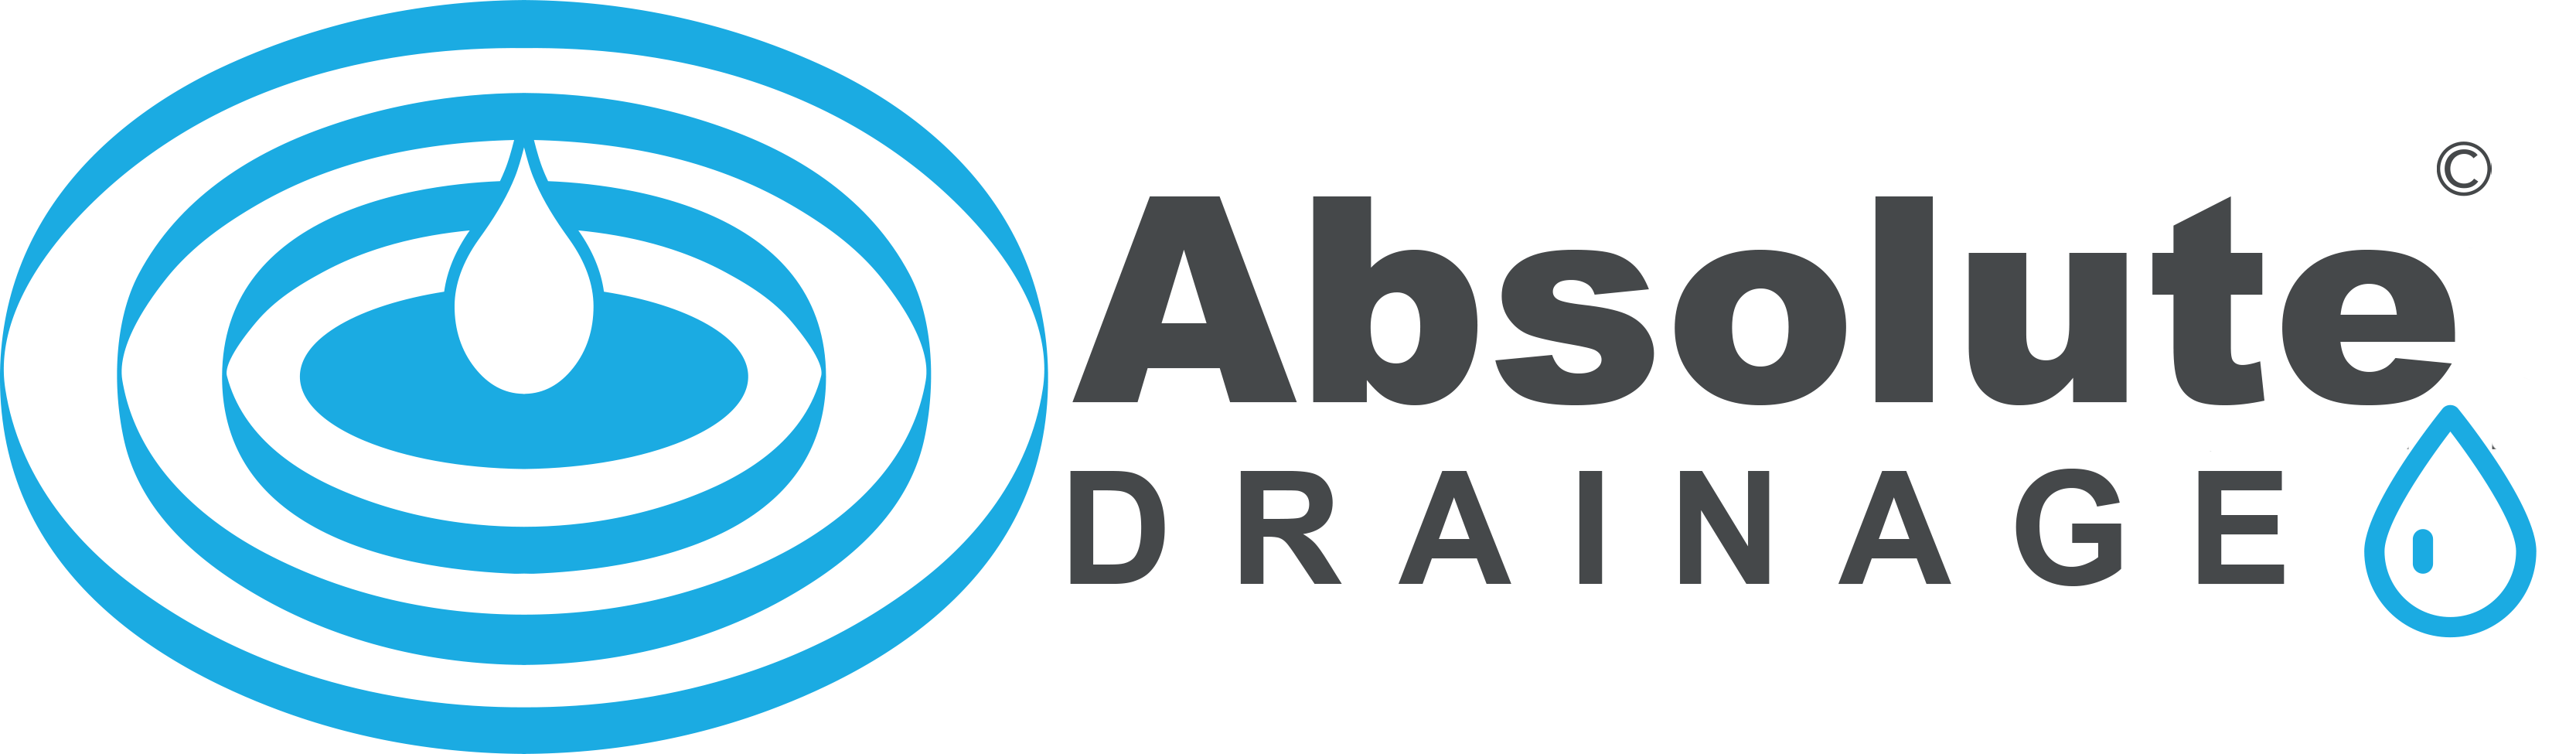 Read Absolute Drainage Reviews